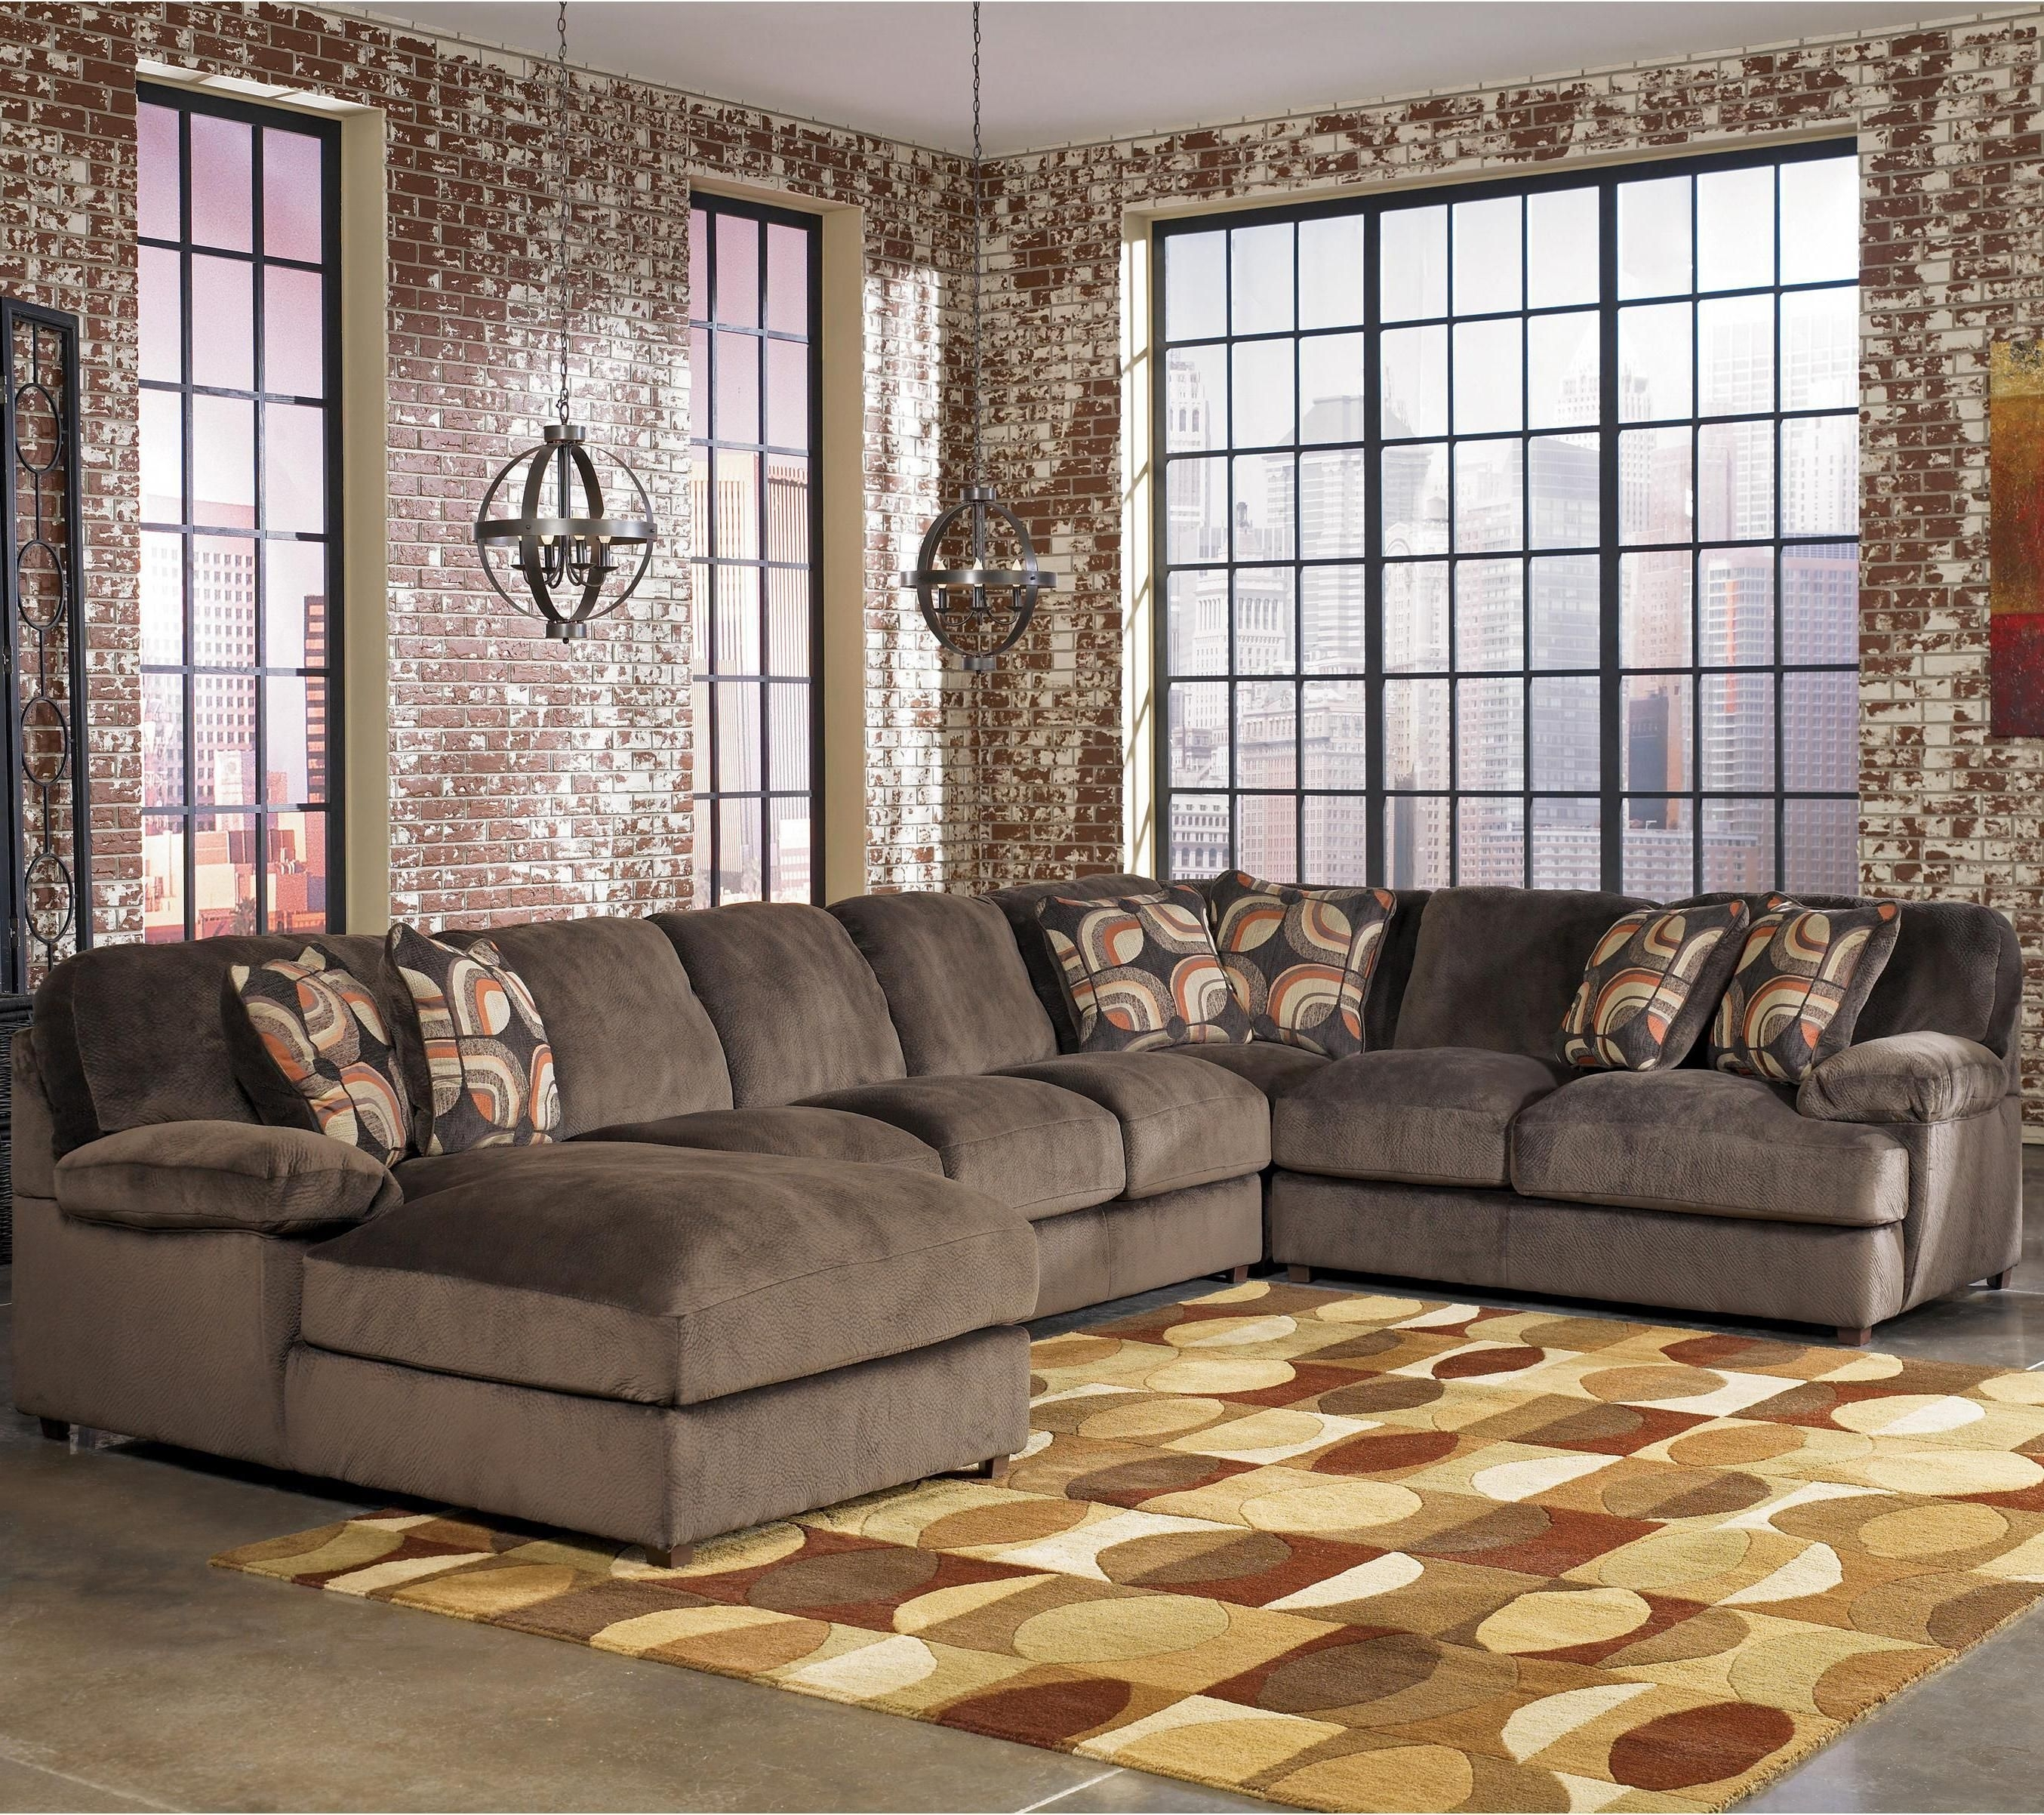 Levitz Furniture Truscotti Sectional - $1927 | Flood-Moultrie within Killeen Tx Sectional Sofas (Image 5 of 10)